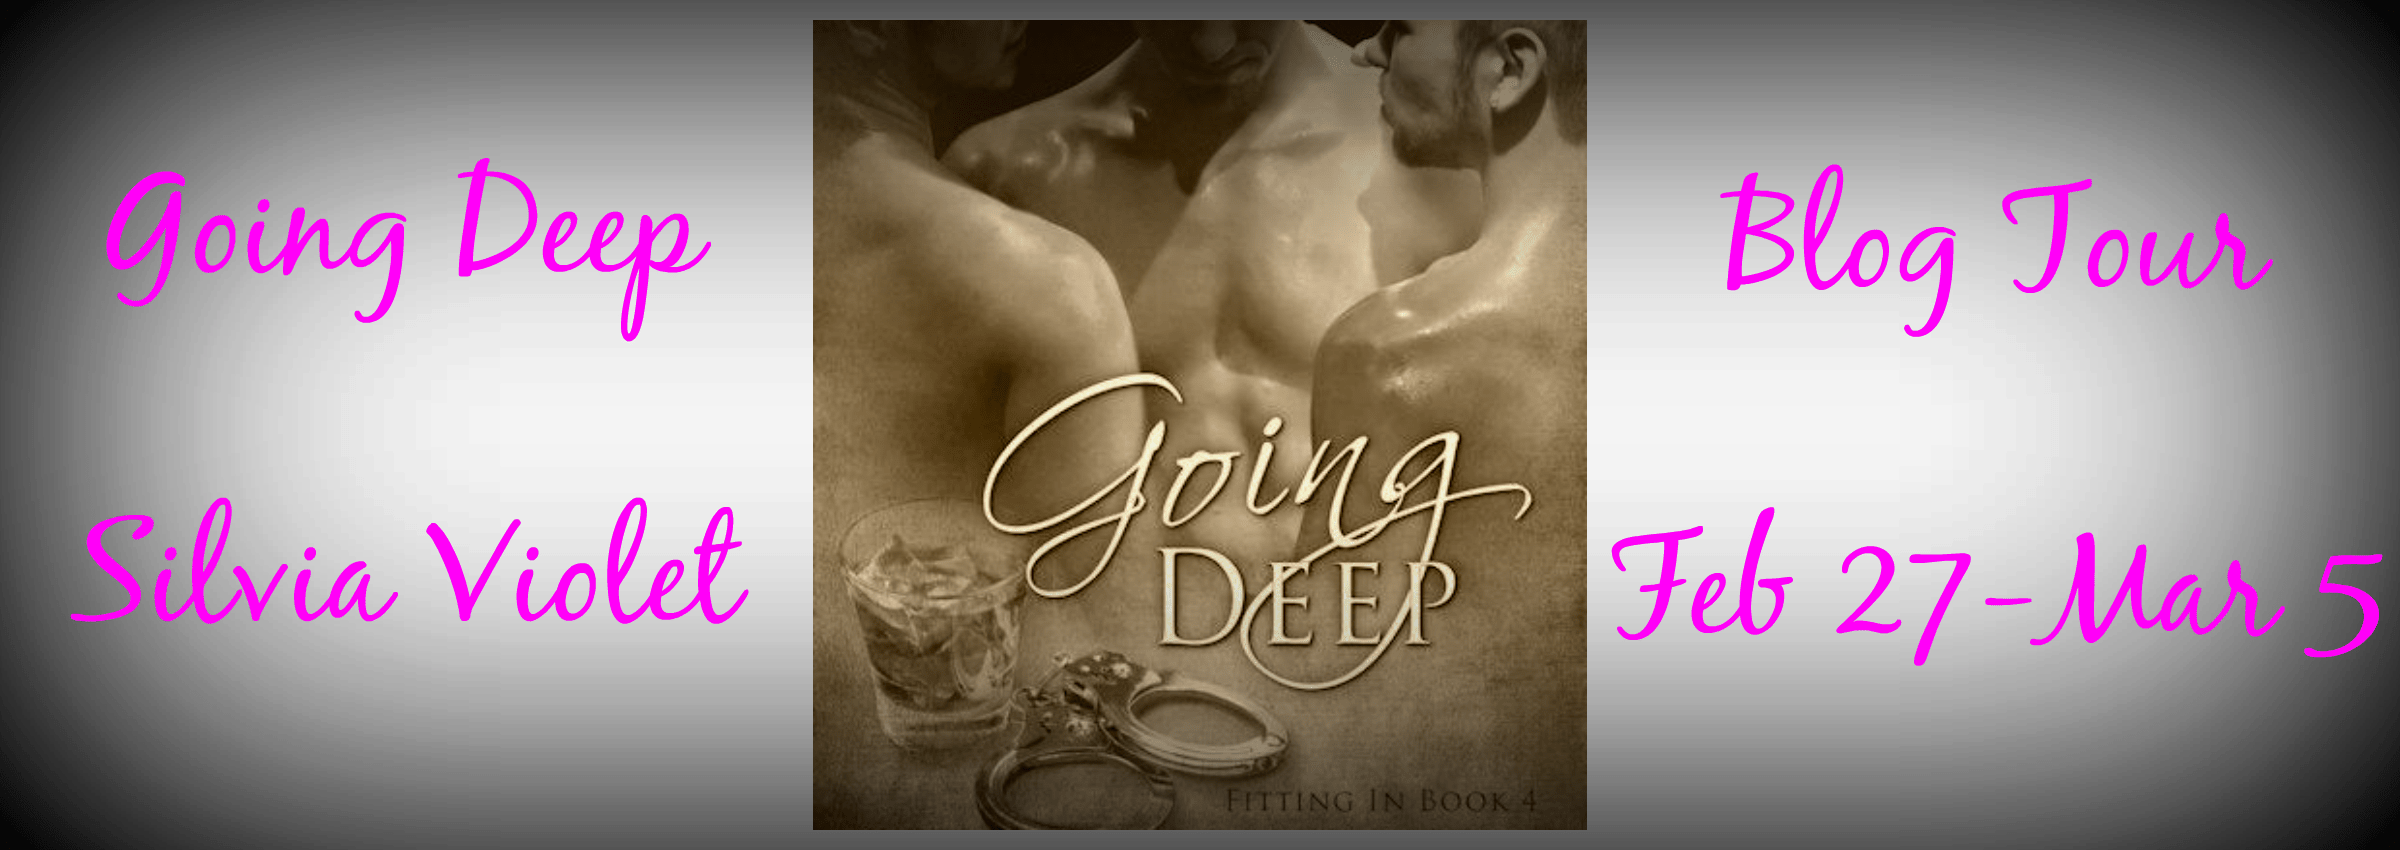 GoingDeep Banner